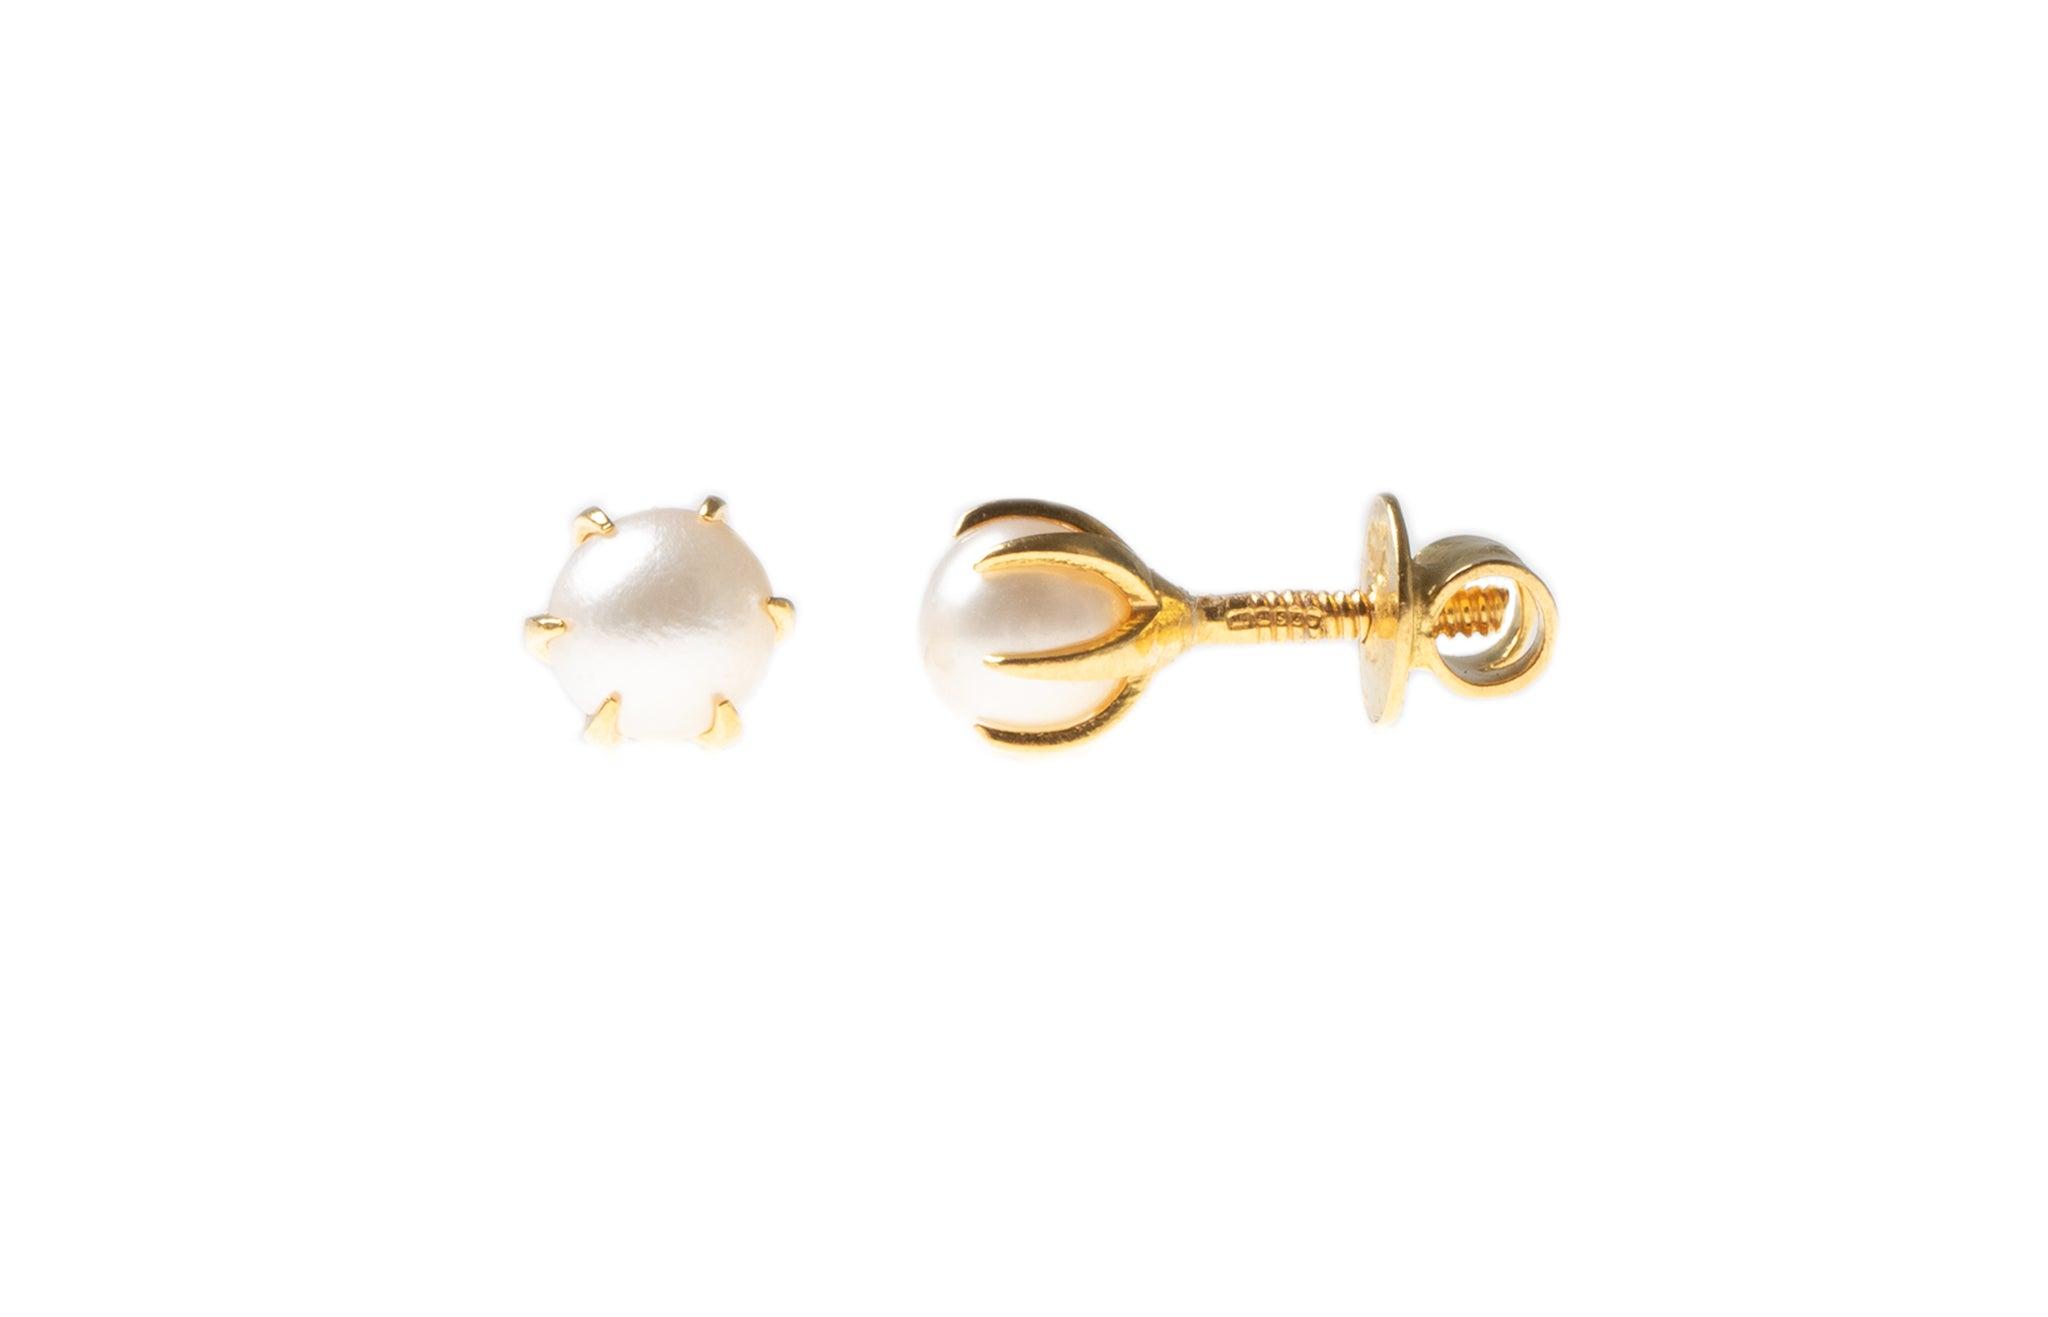 22ct Gold Cultured Pearl Earrings (1.4g) E-4368